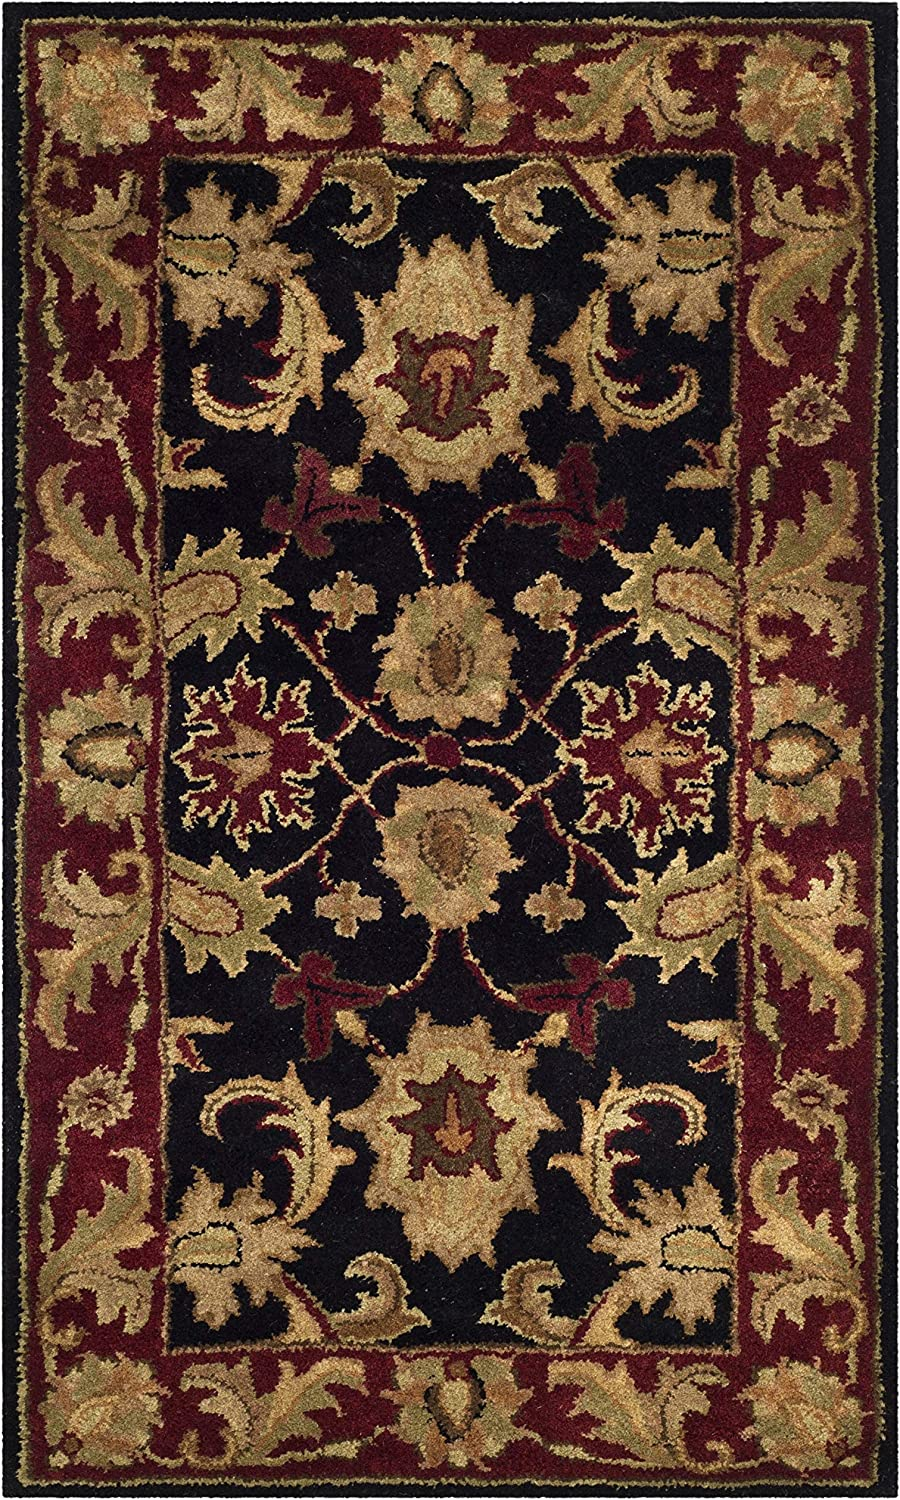 Safavieh Classic Collection CL244C Handmade Traditional Oriental Black and Burgundy Wool Area Rug (2' x 3')